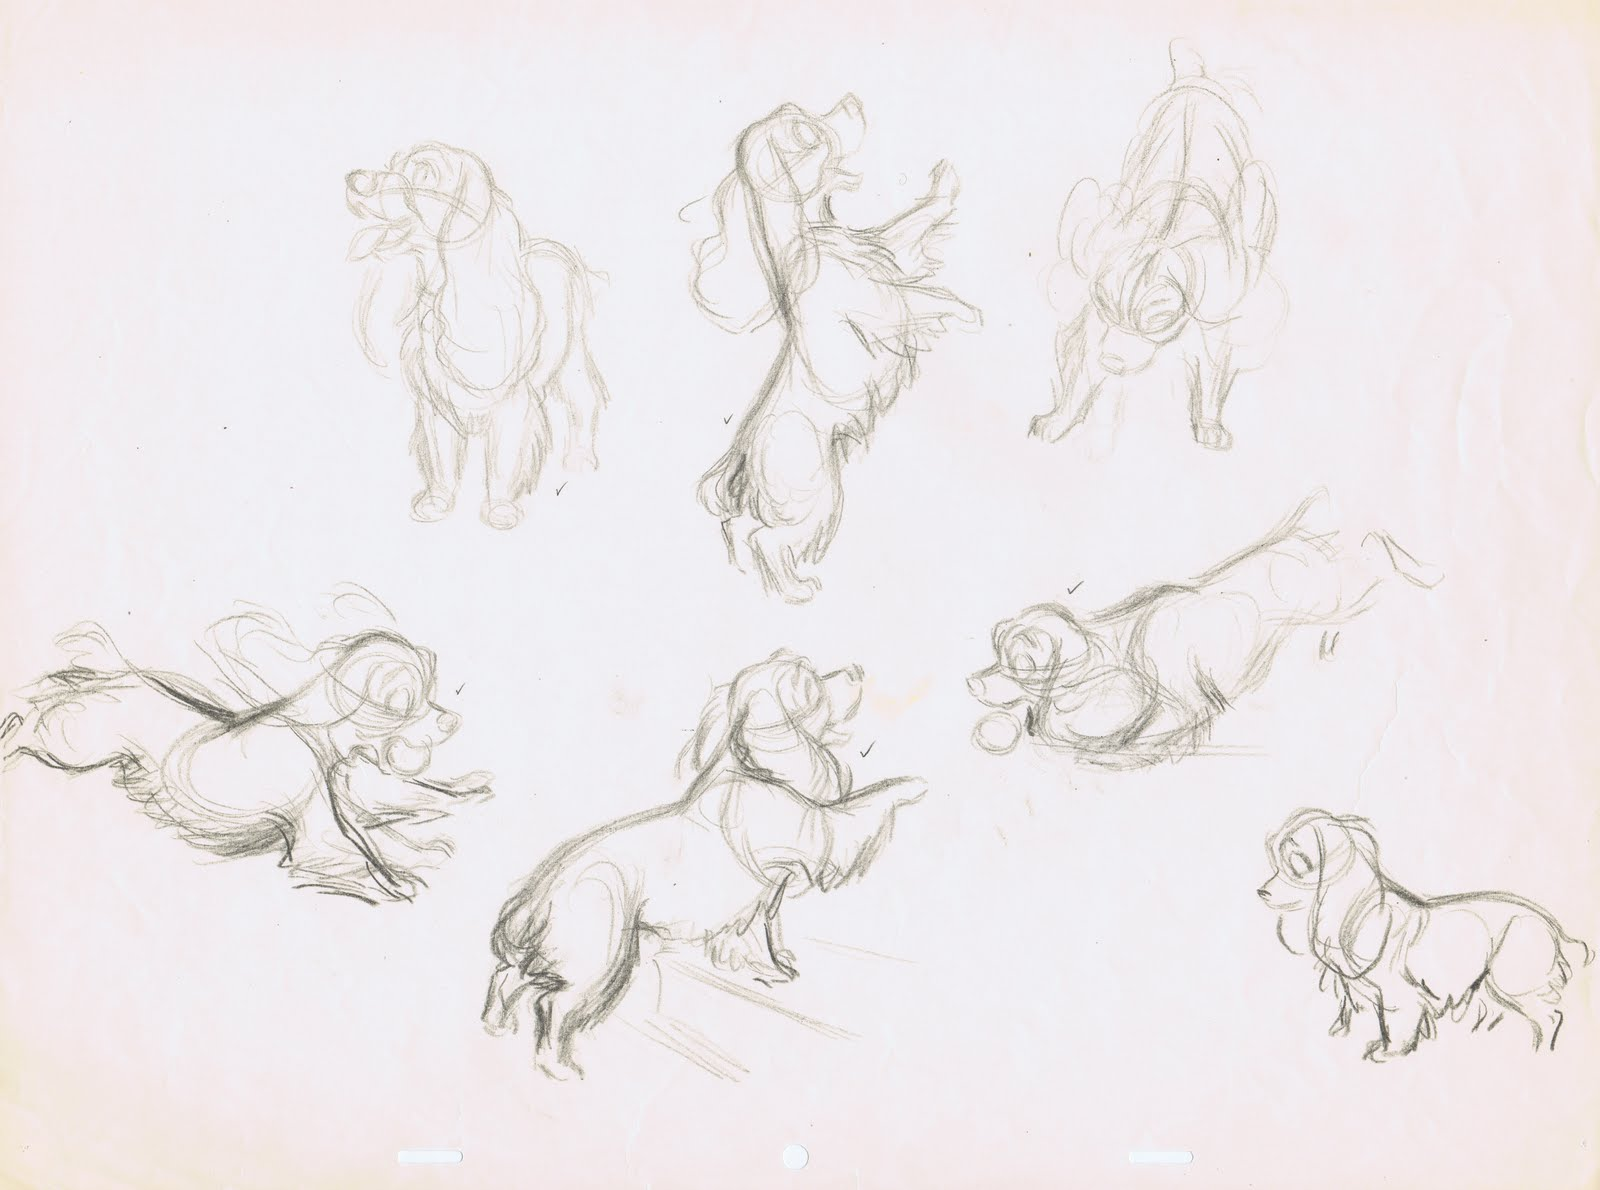 Living Lines Library Lady And The Tramp 1955 Character Design Model Sheets Production Drawings